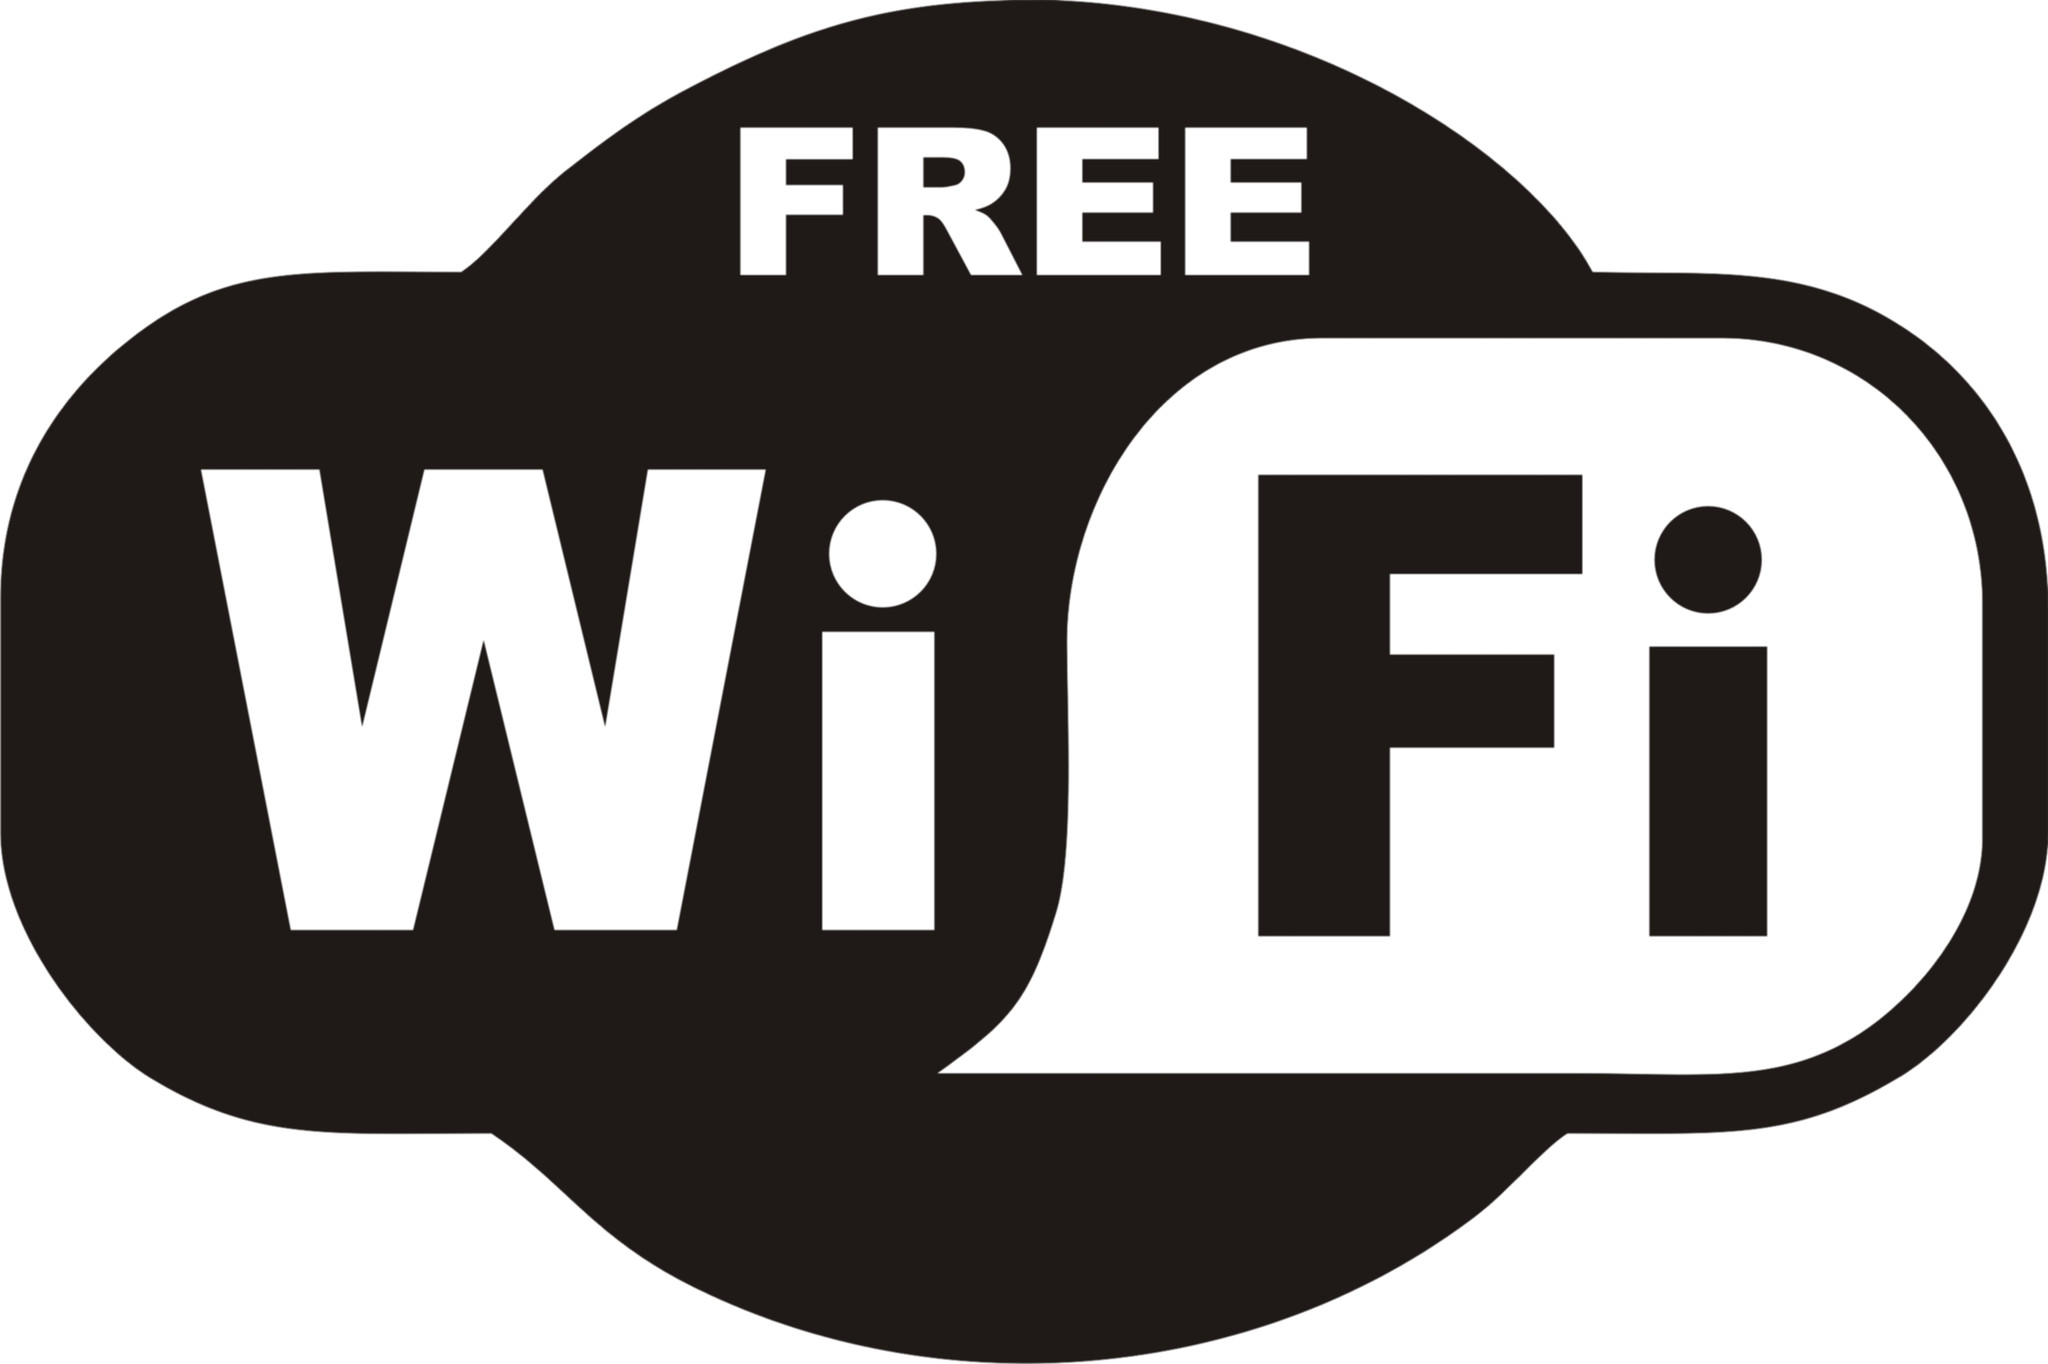 Gratis internet (WIFI) in huisje